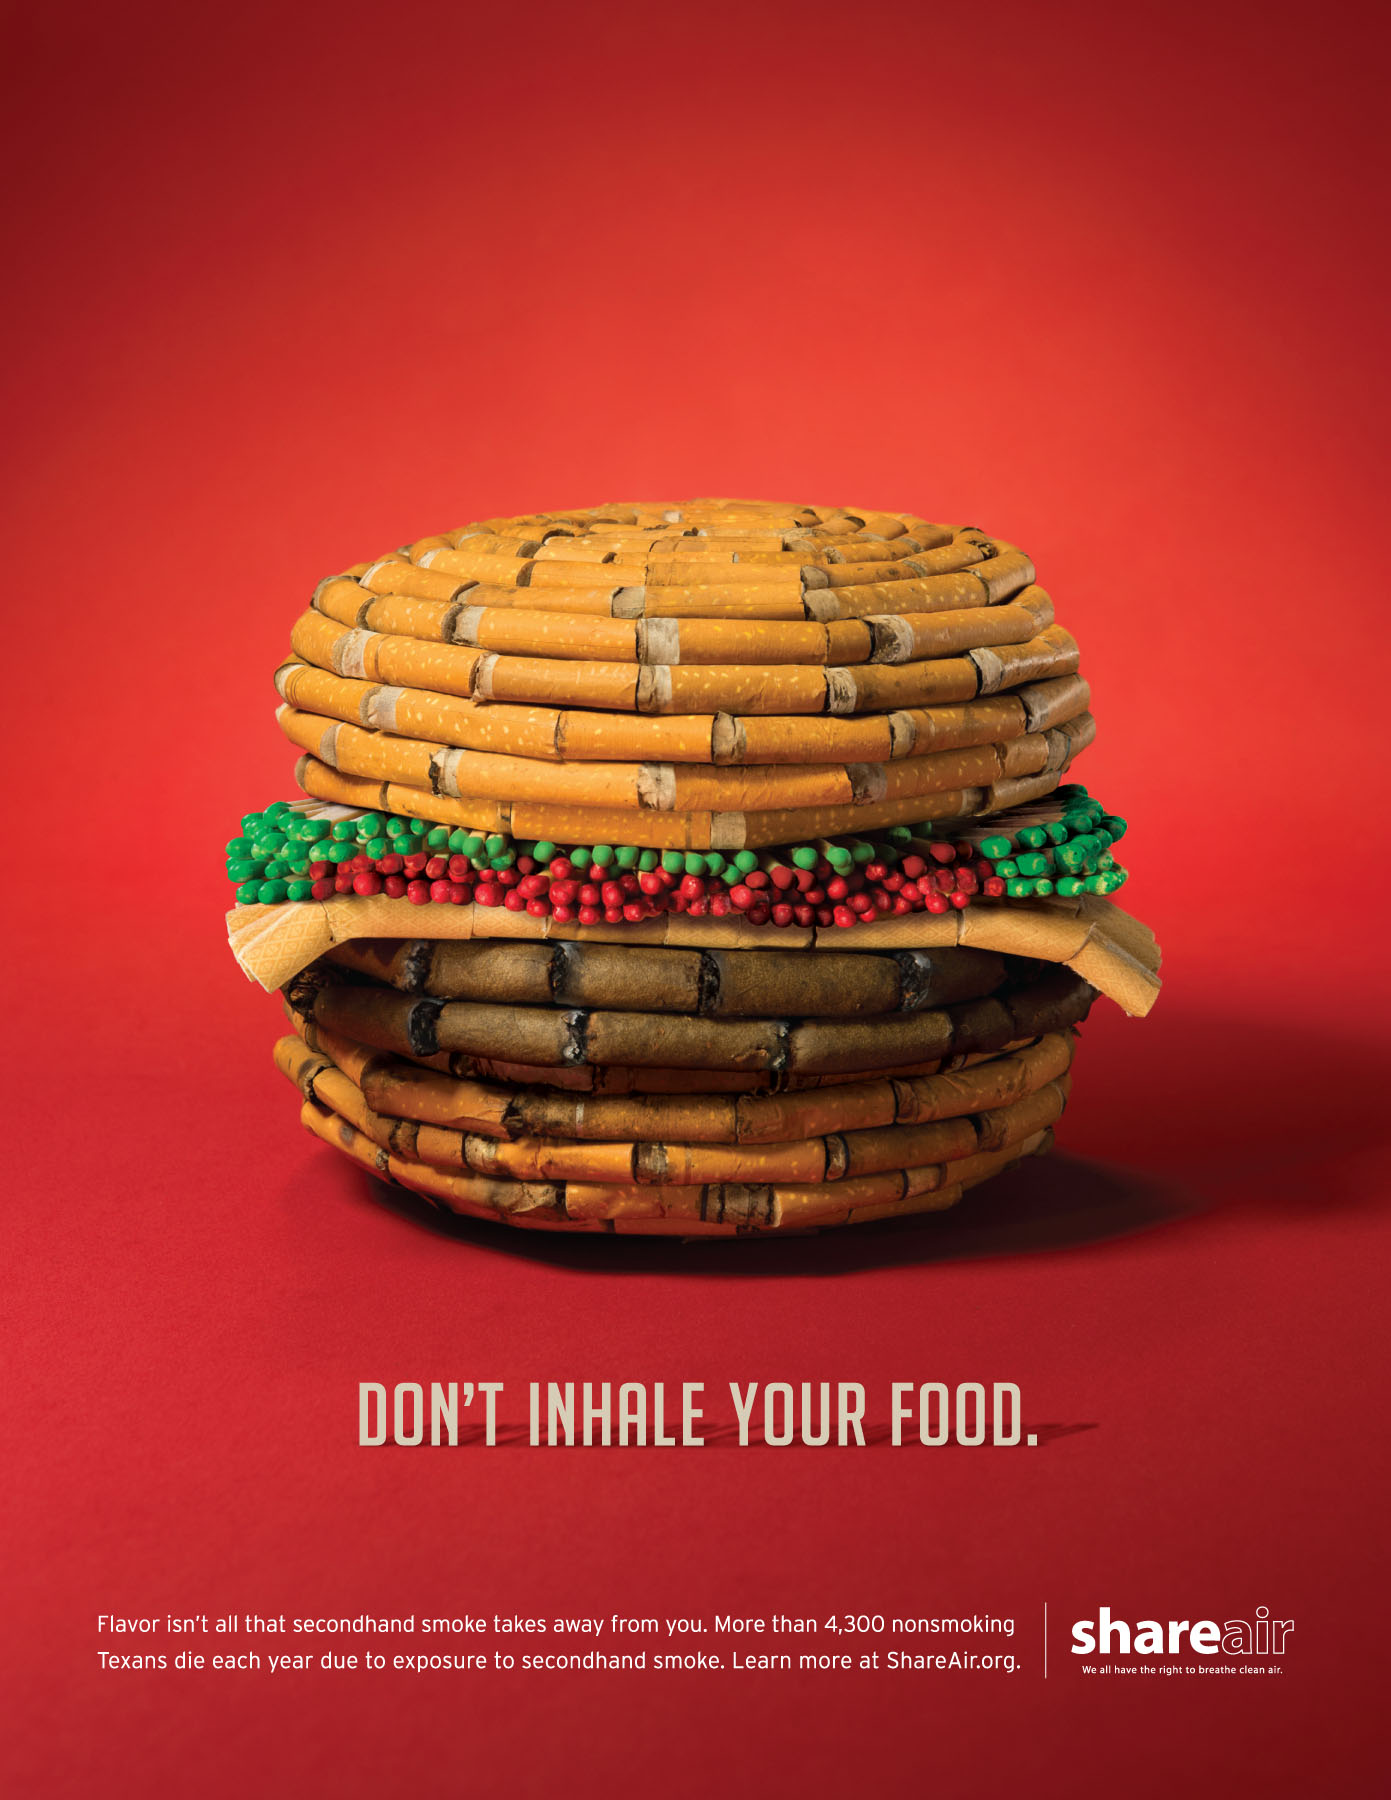 Share Air Print Advert By EnviroMedia: Food | Ads of the ...